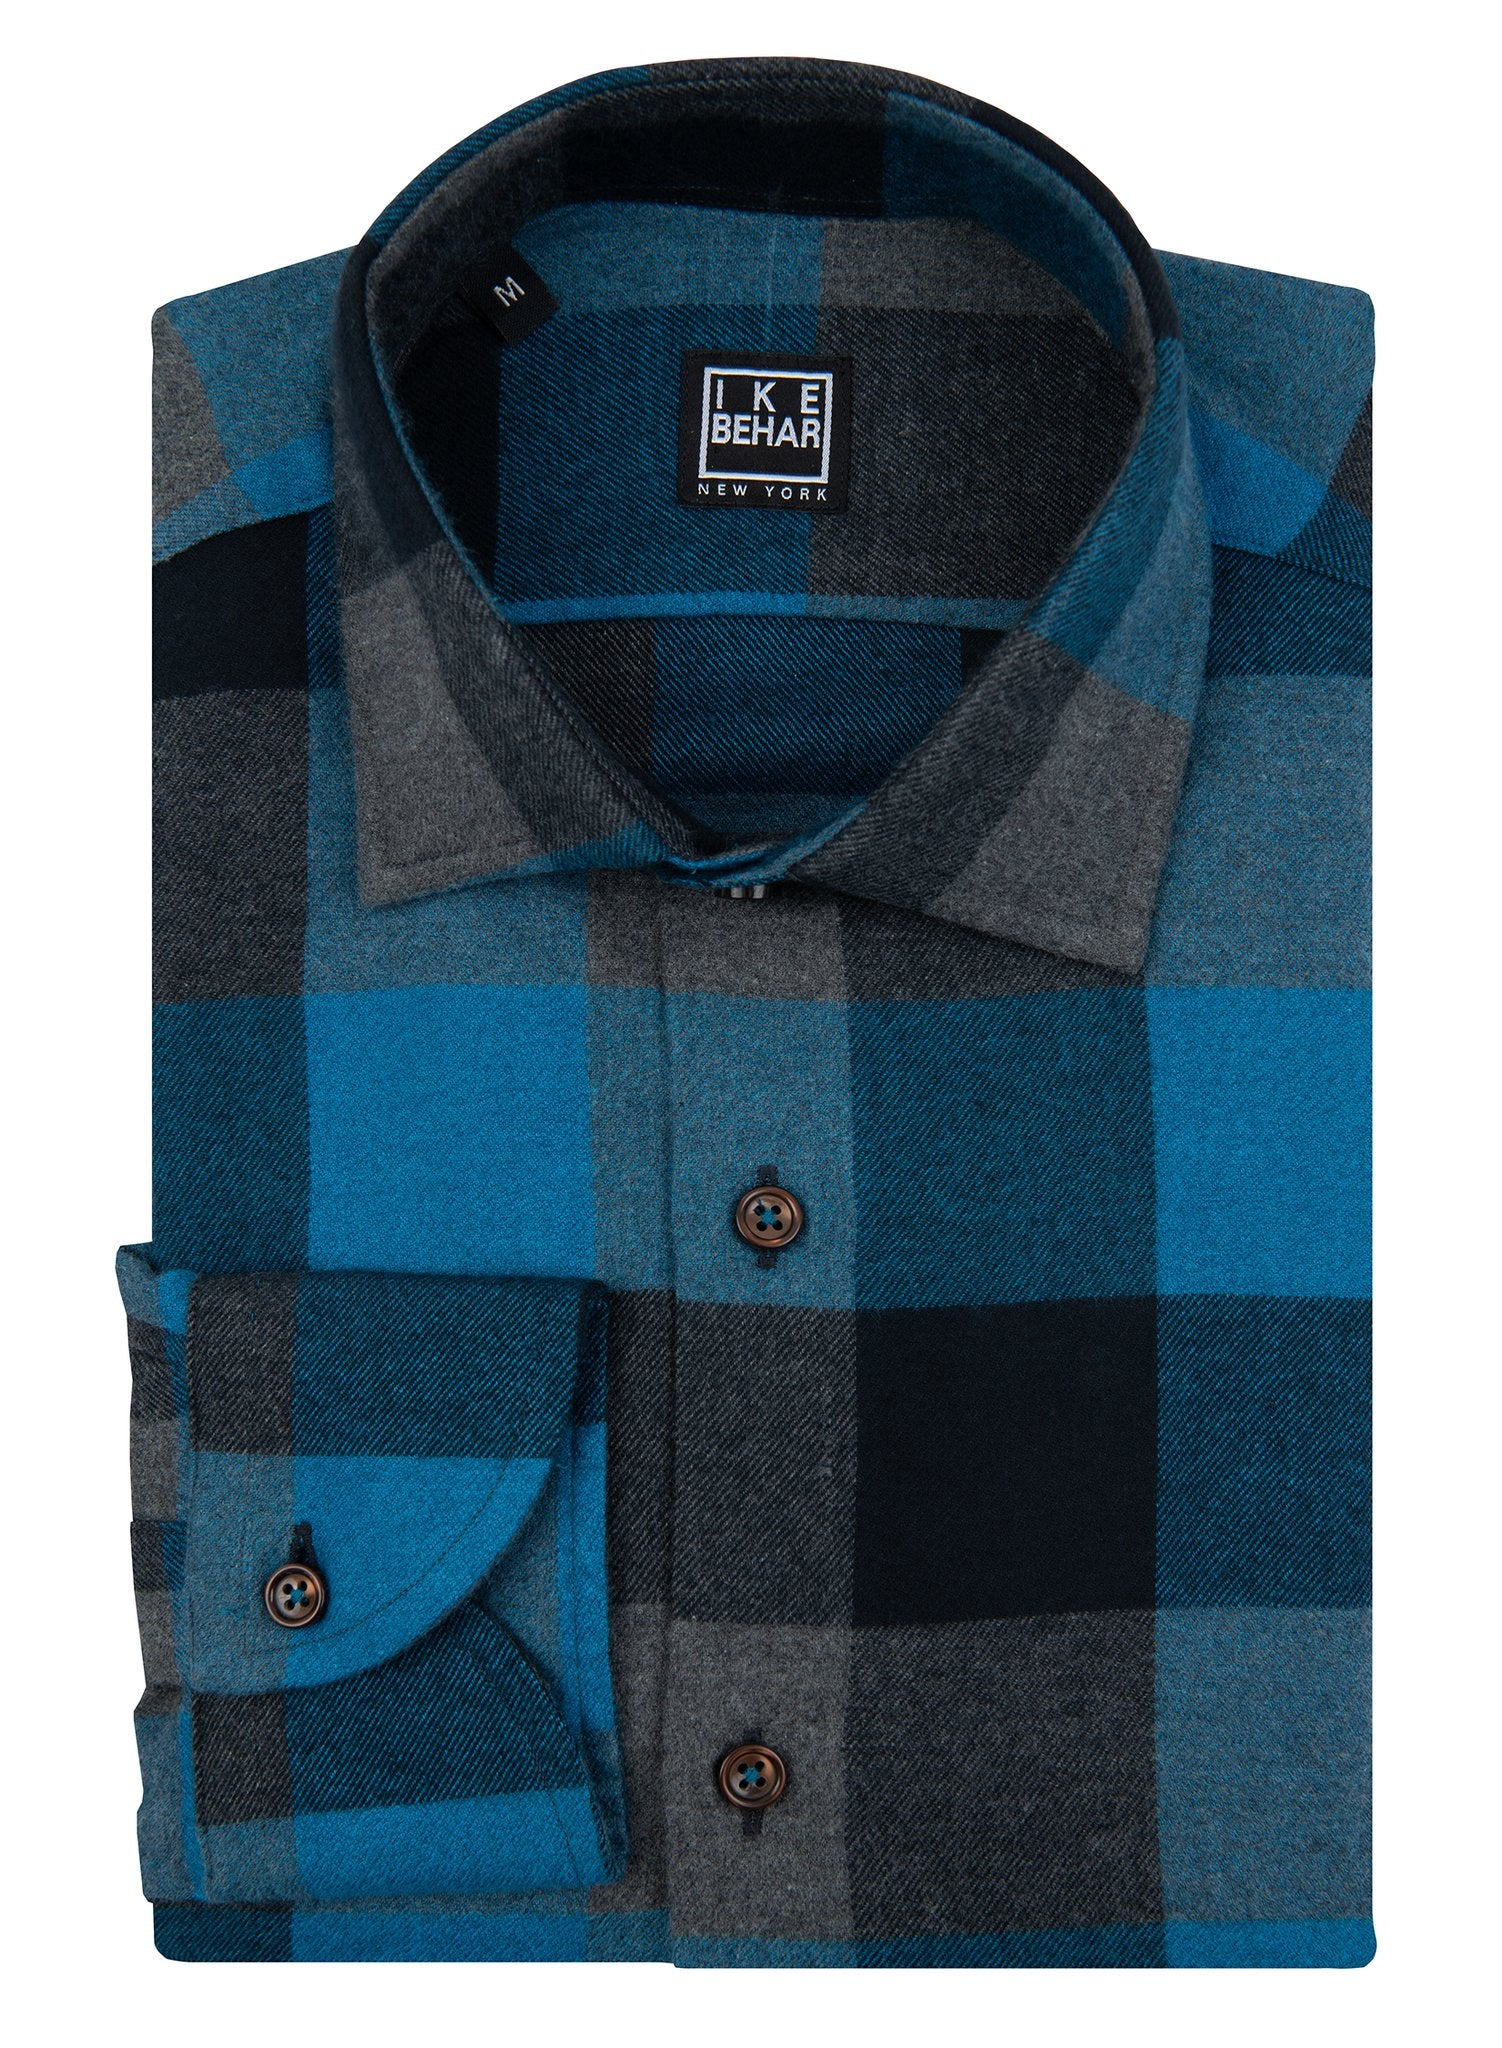 Black and Sea Green Flannel Sport Shirt